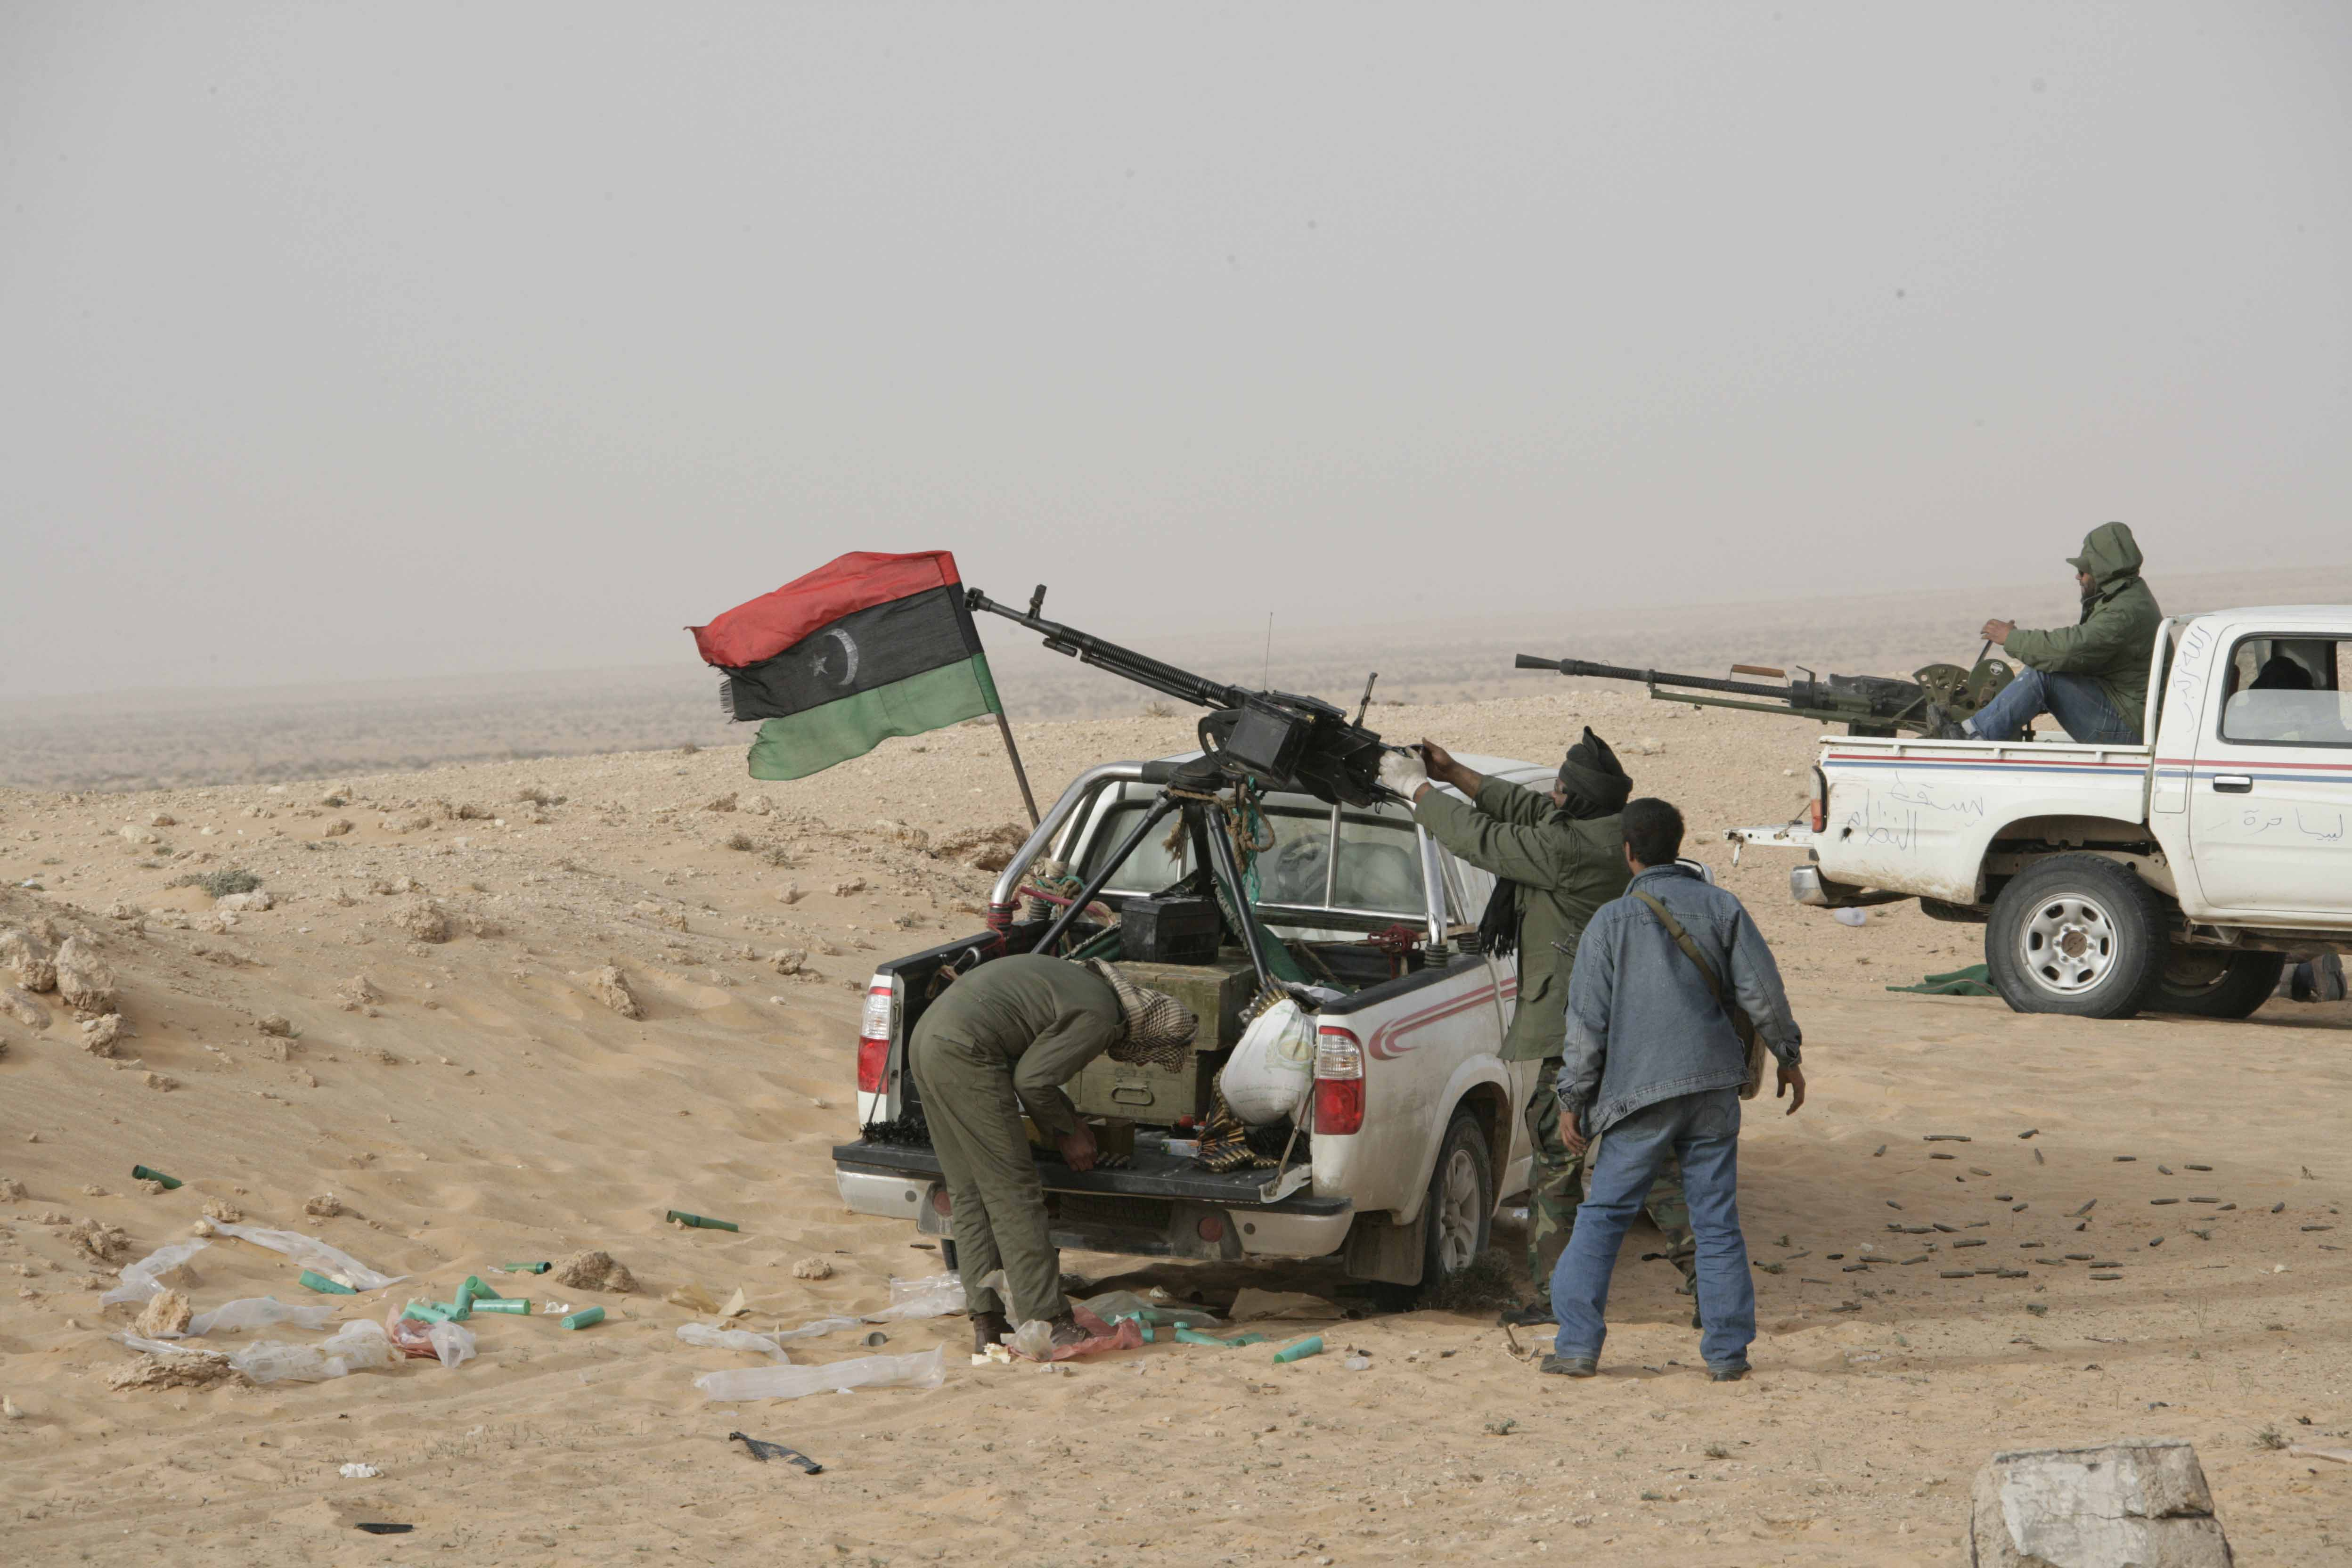 The February 17th Revolution in Libya